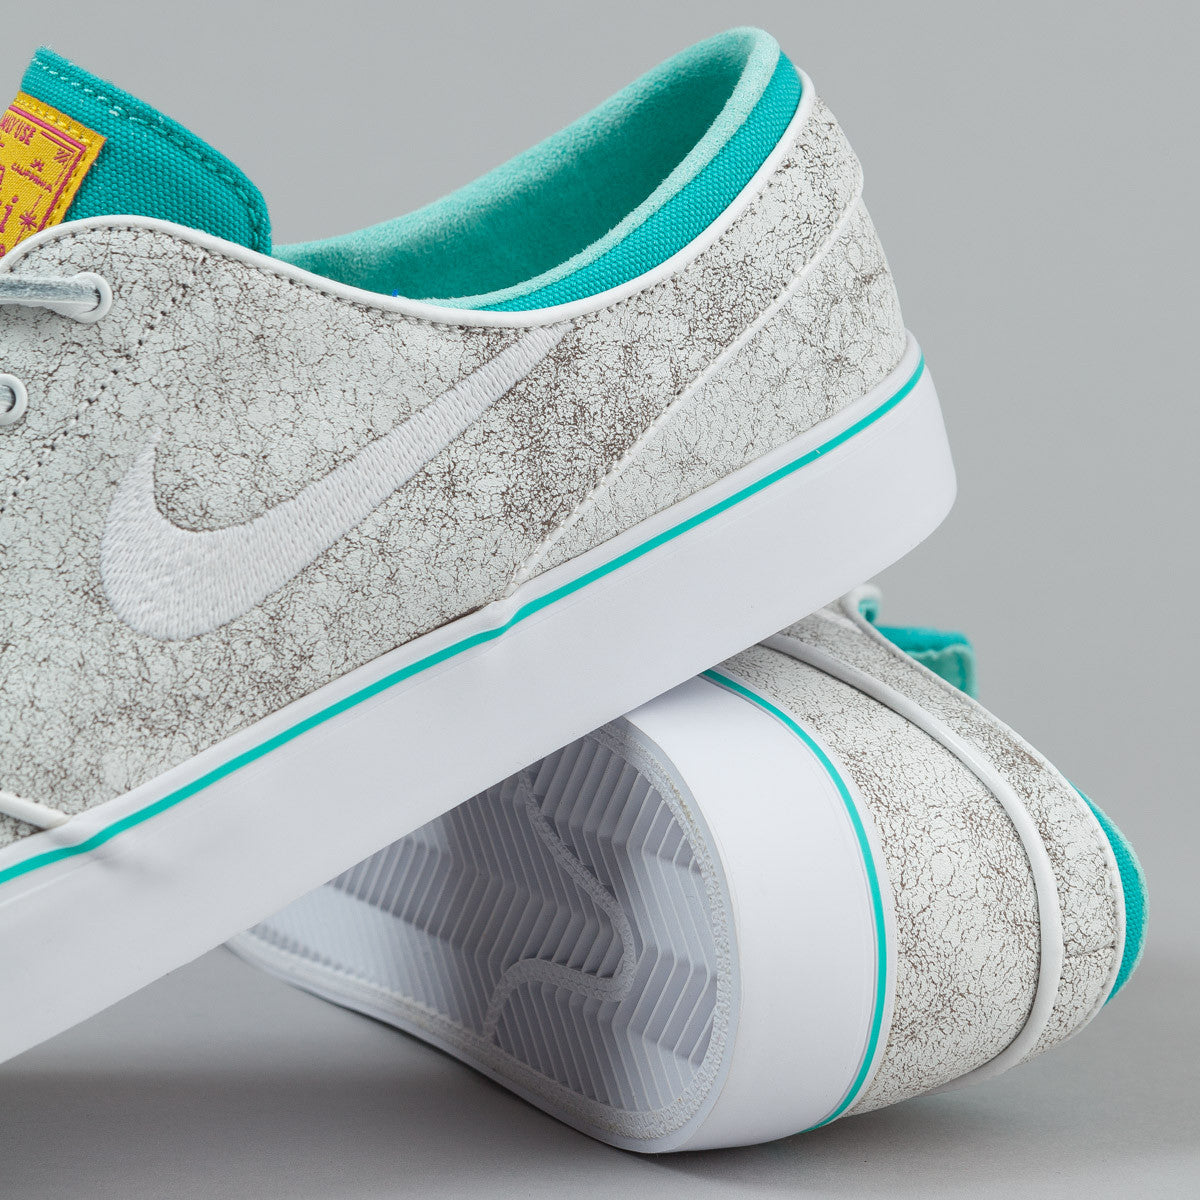 Nike SB Stefan Janoski Elite Shoes 'Flamingo' - White / White - Black - Hyper Jade